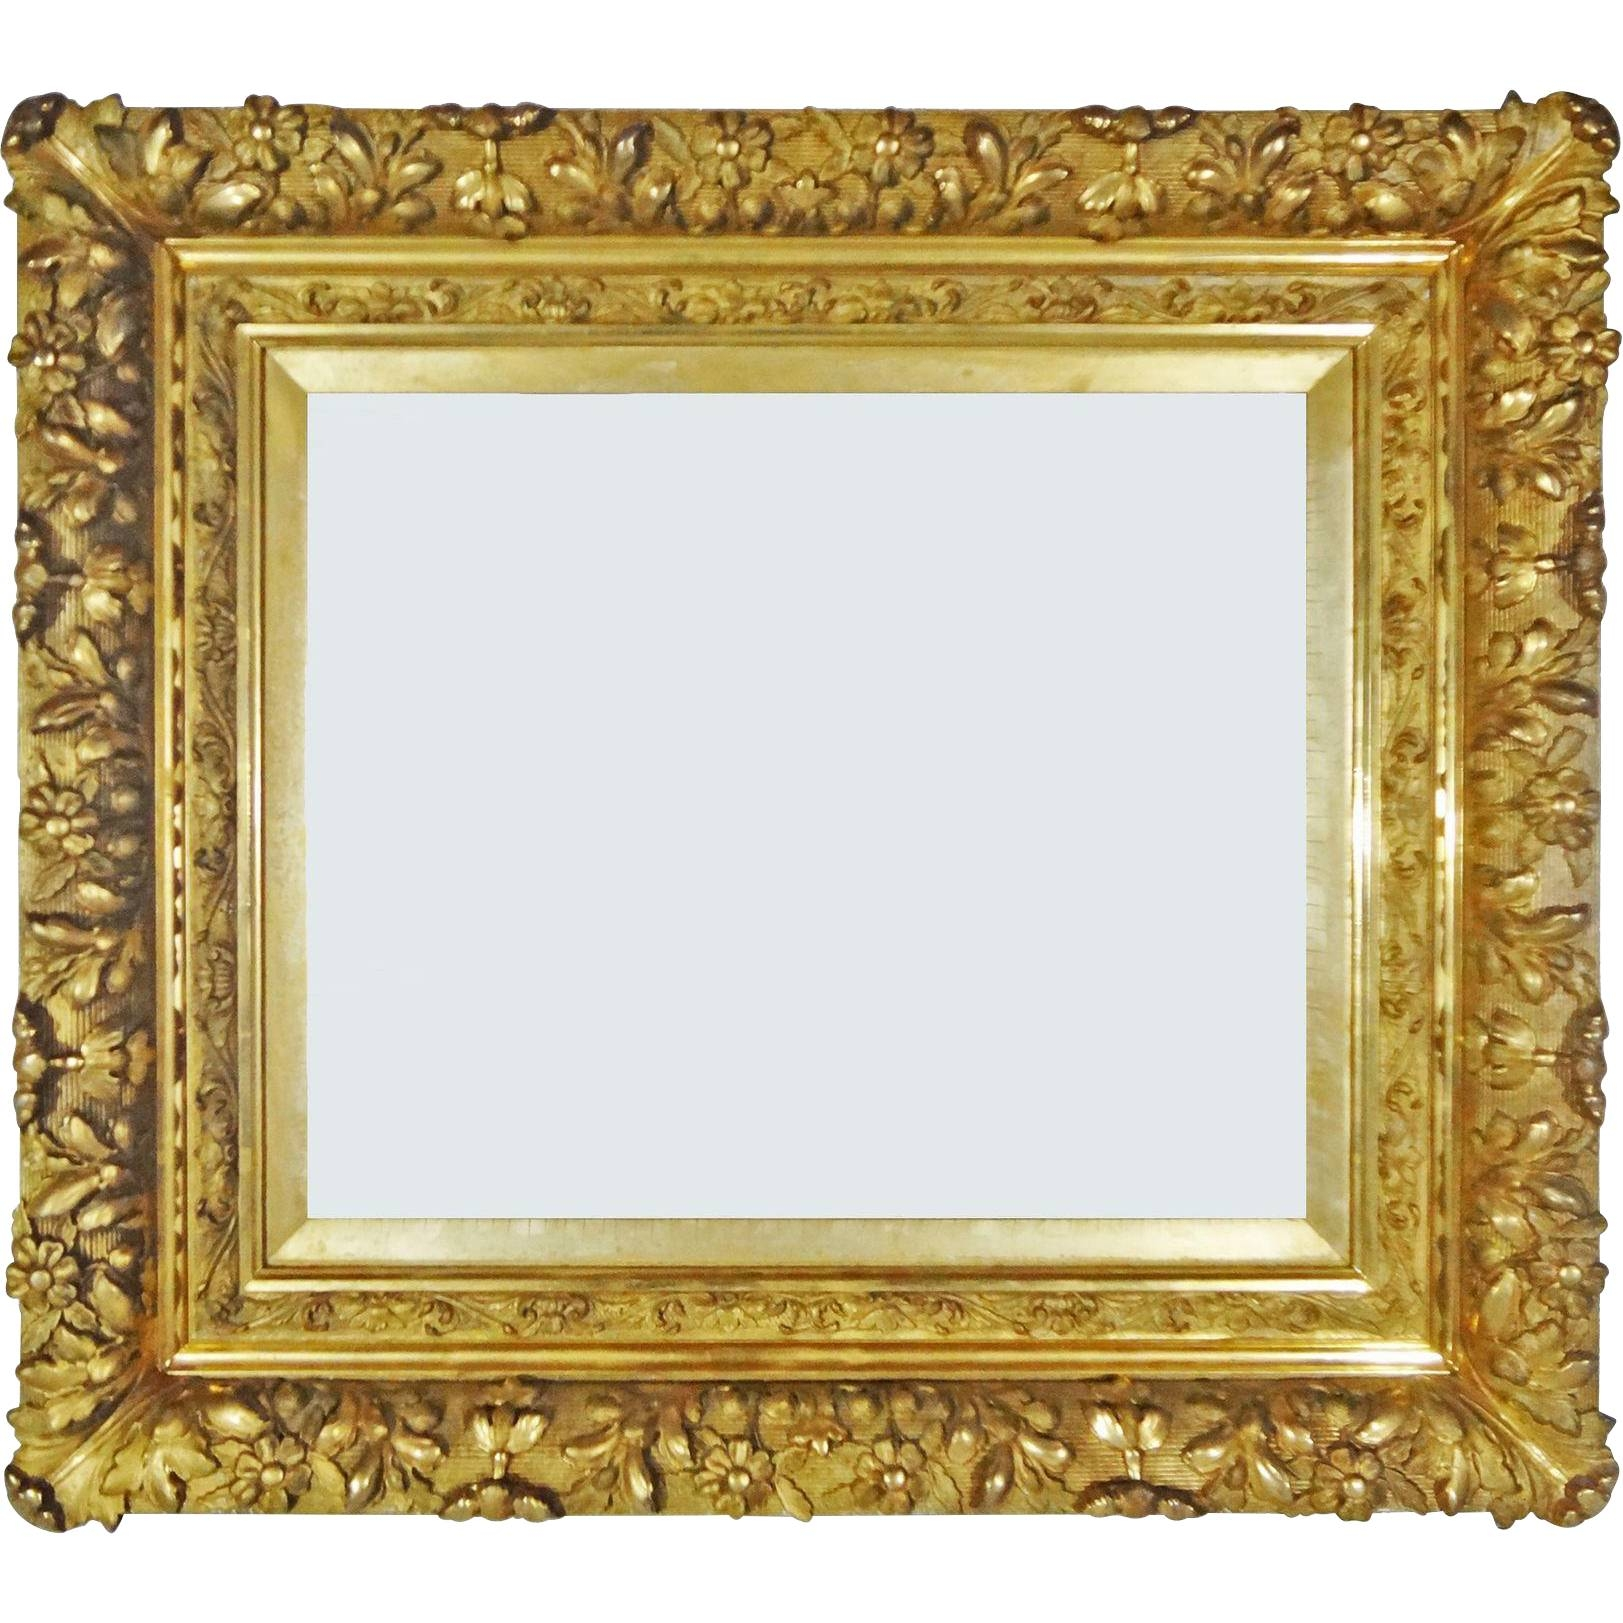 Antique French Louis Xiii Style Barbizon Gilt Wood Gesso Picture intended for Antique Gilt Mirrors (Image 10 of 25)